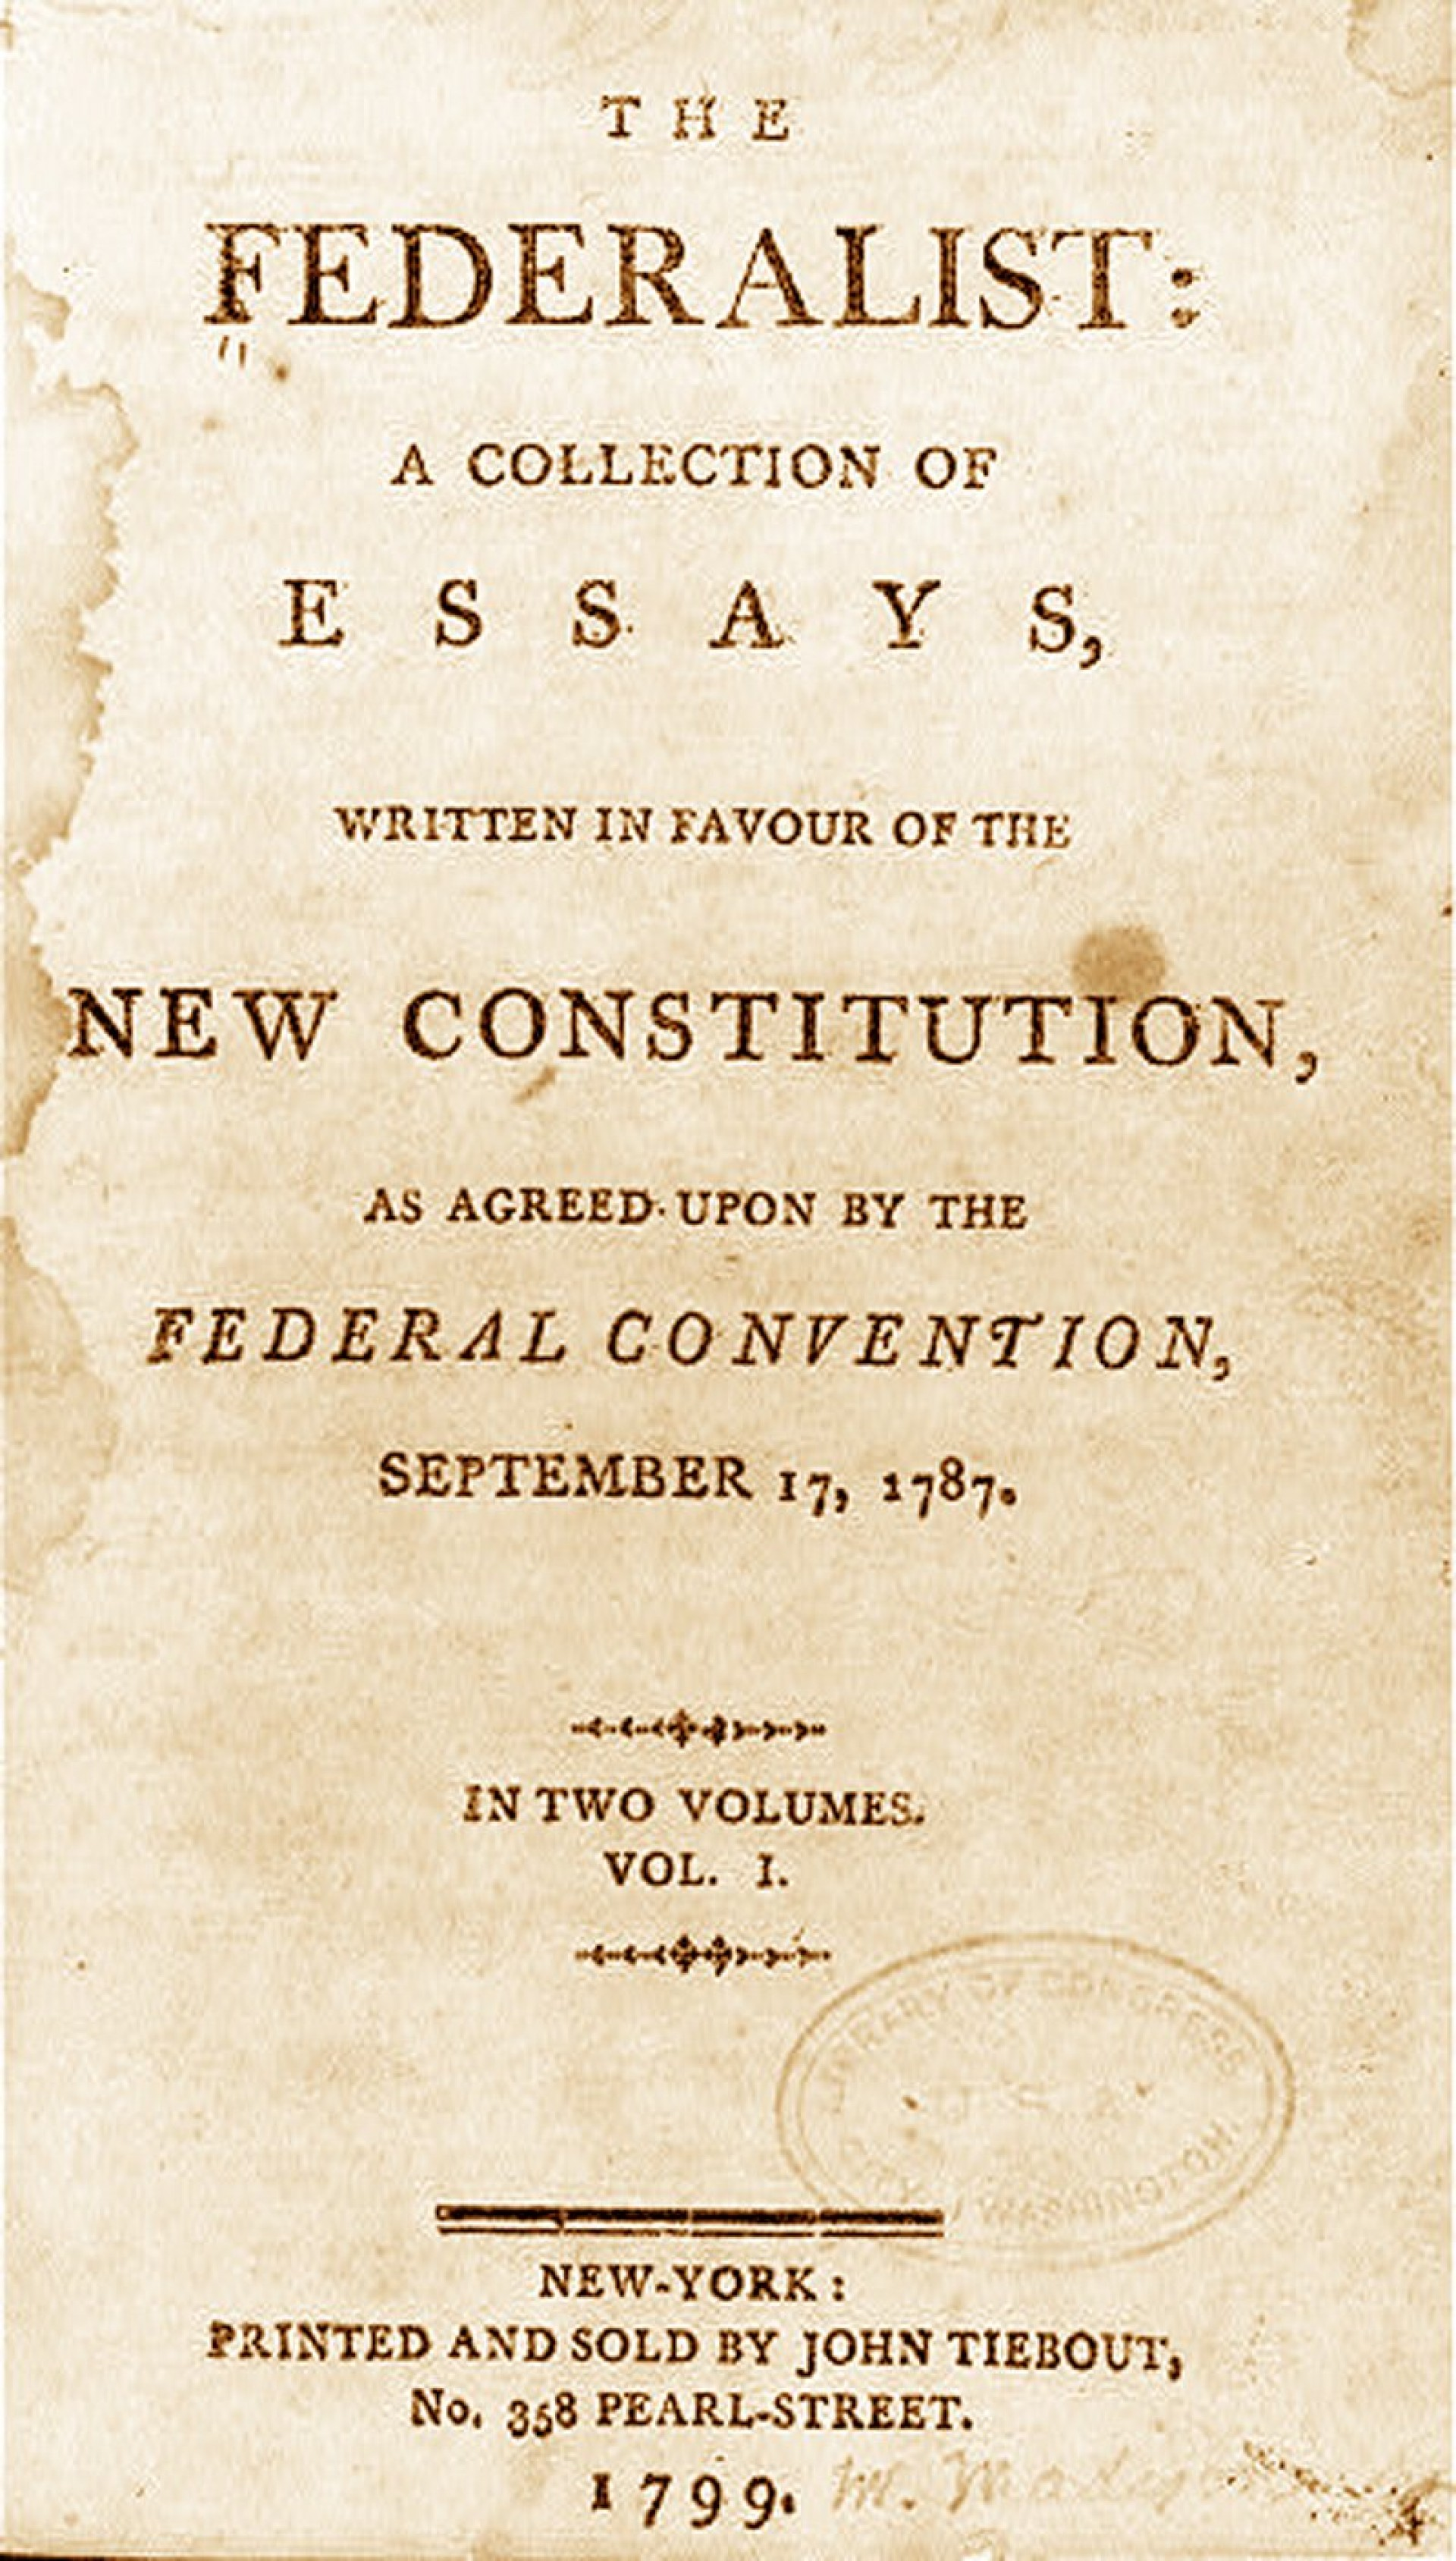 018 Essay Example Federalistpapers Alexander Hamilton Frightening Essays 51 Federalist Papers 78 Did Wrote 1920